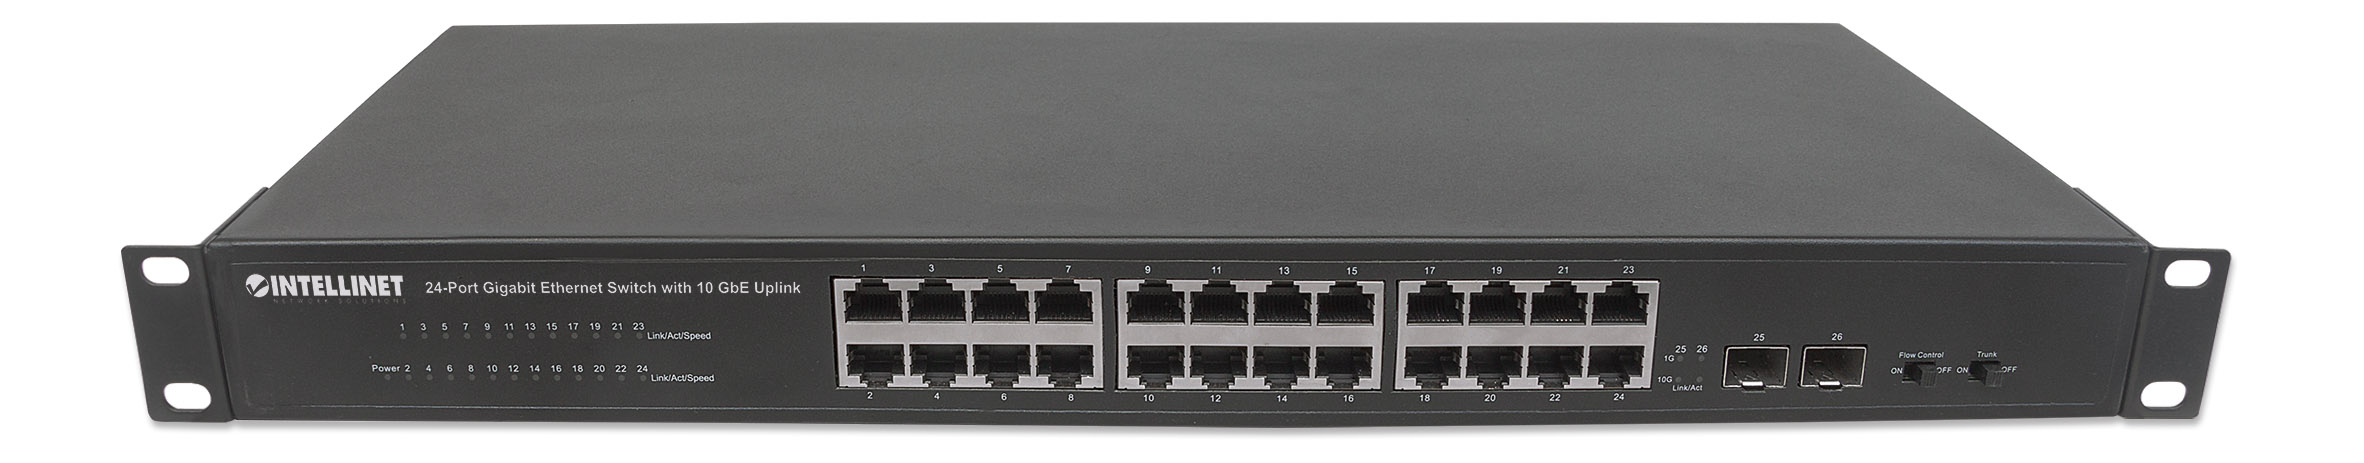 24-Port Gigabit Ethernet Switch with 10 GbE Uplink